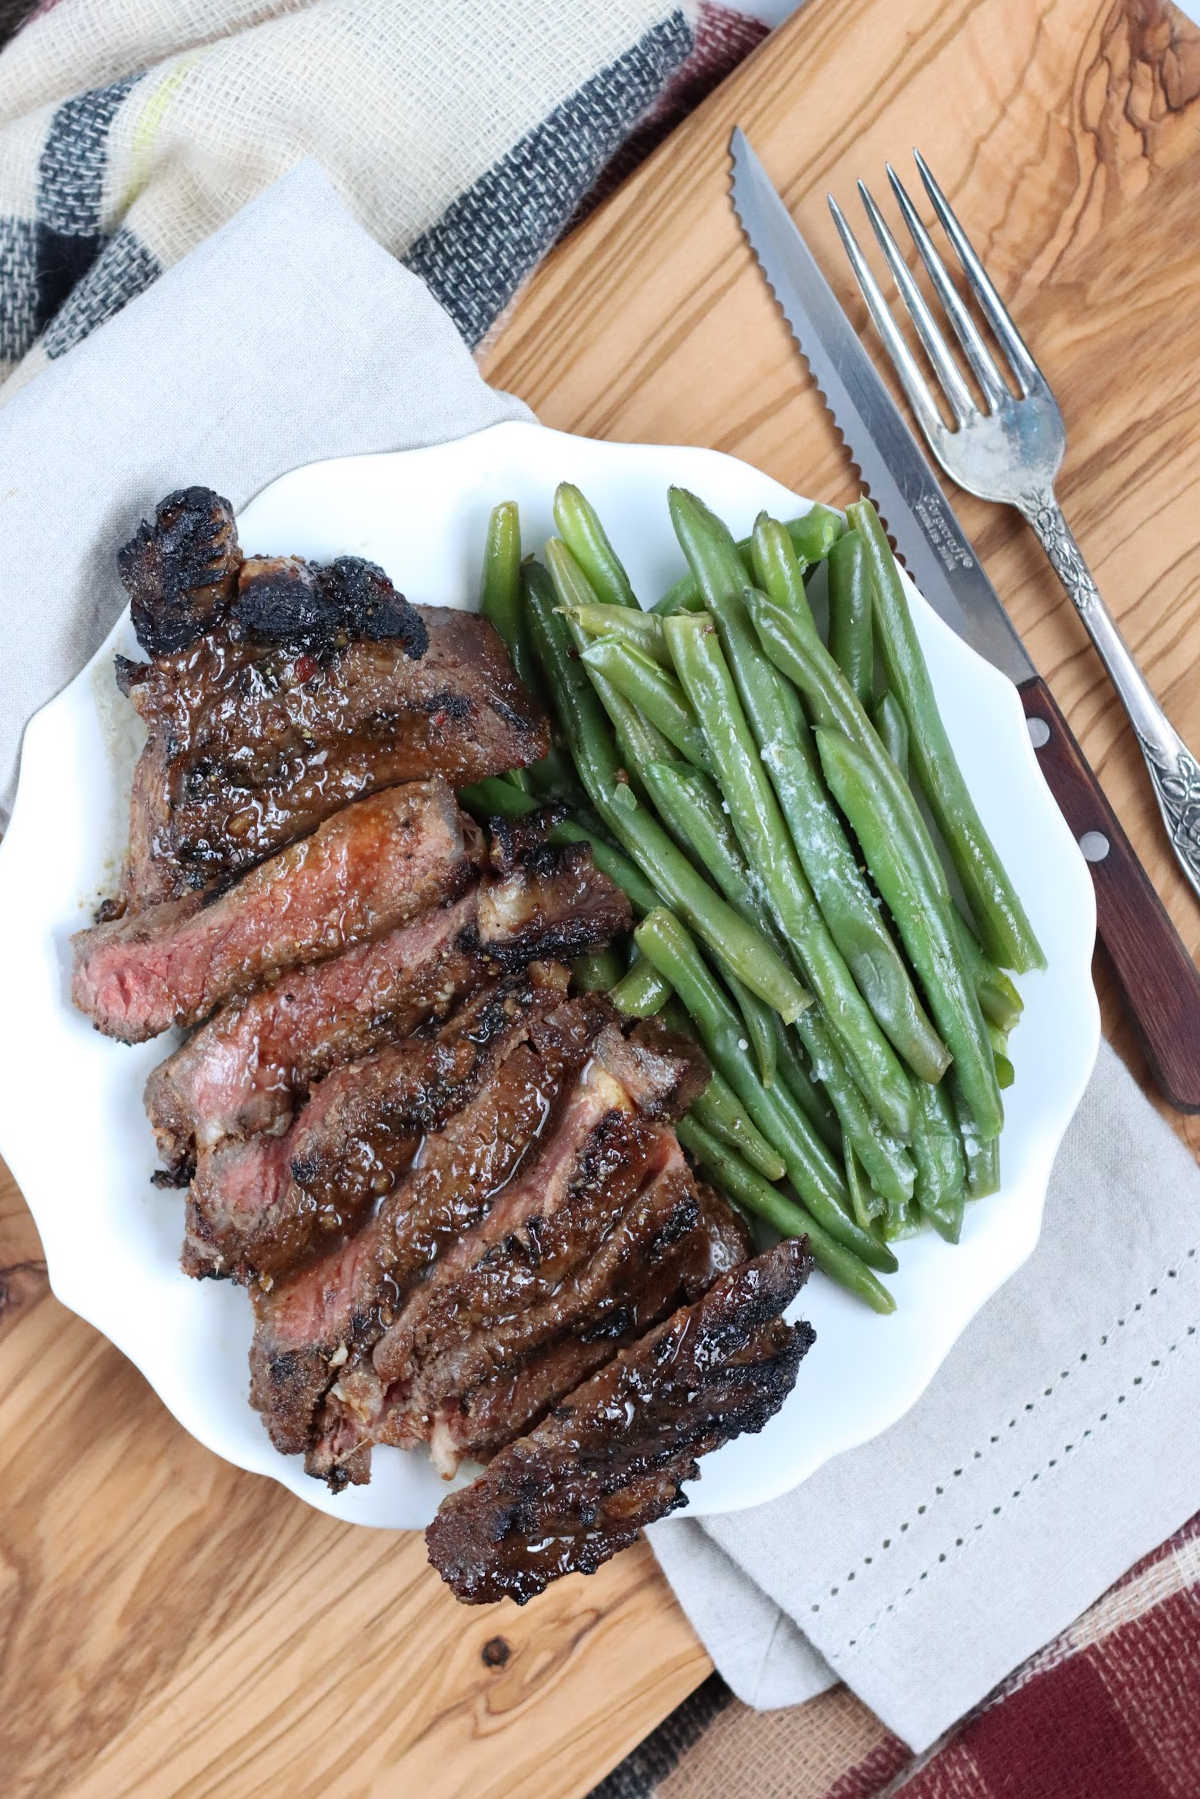 Sliced grilled steak on small white plate with side of fresh green beans.